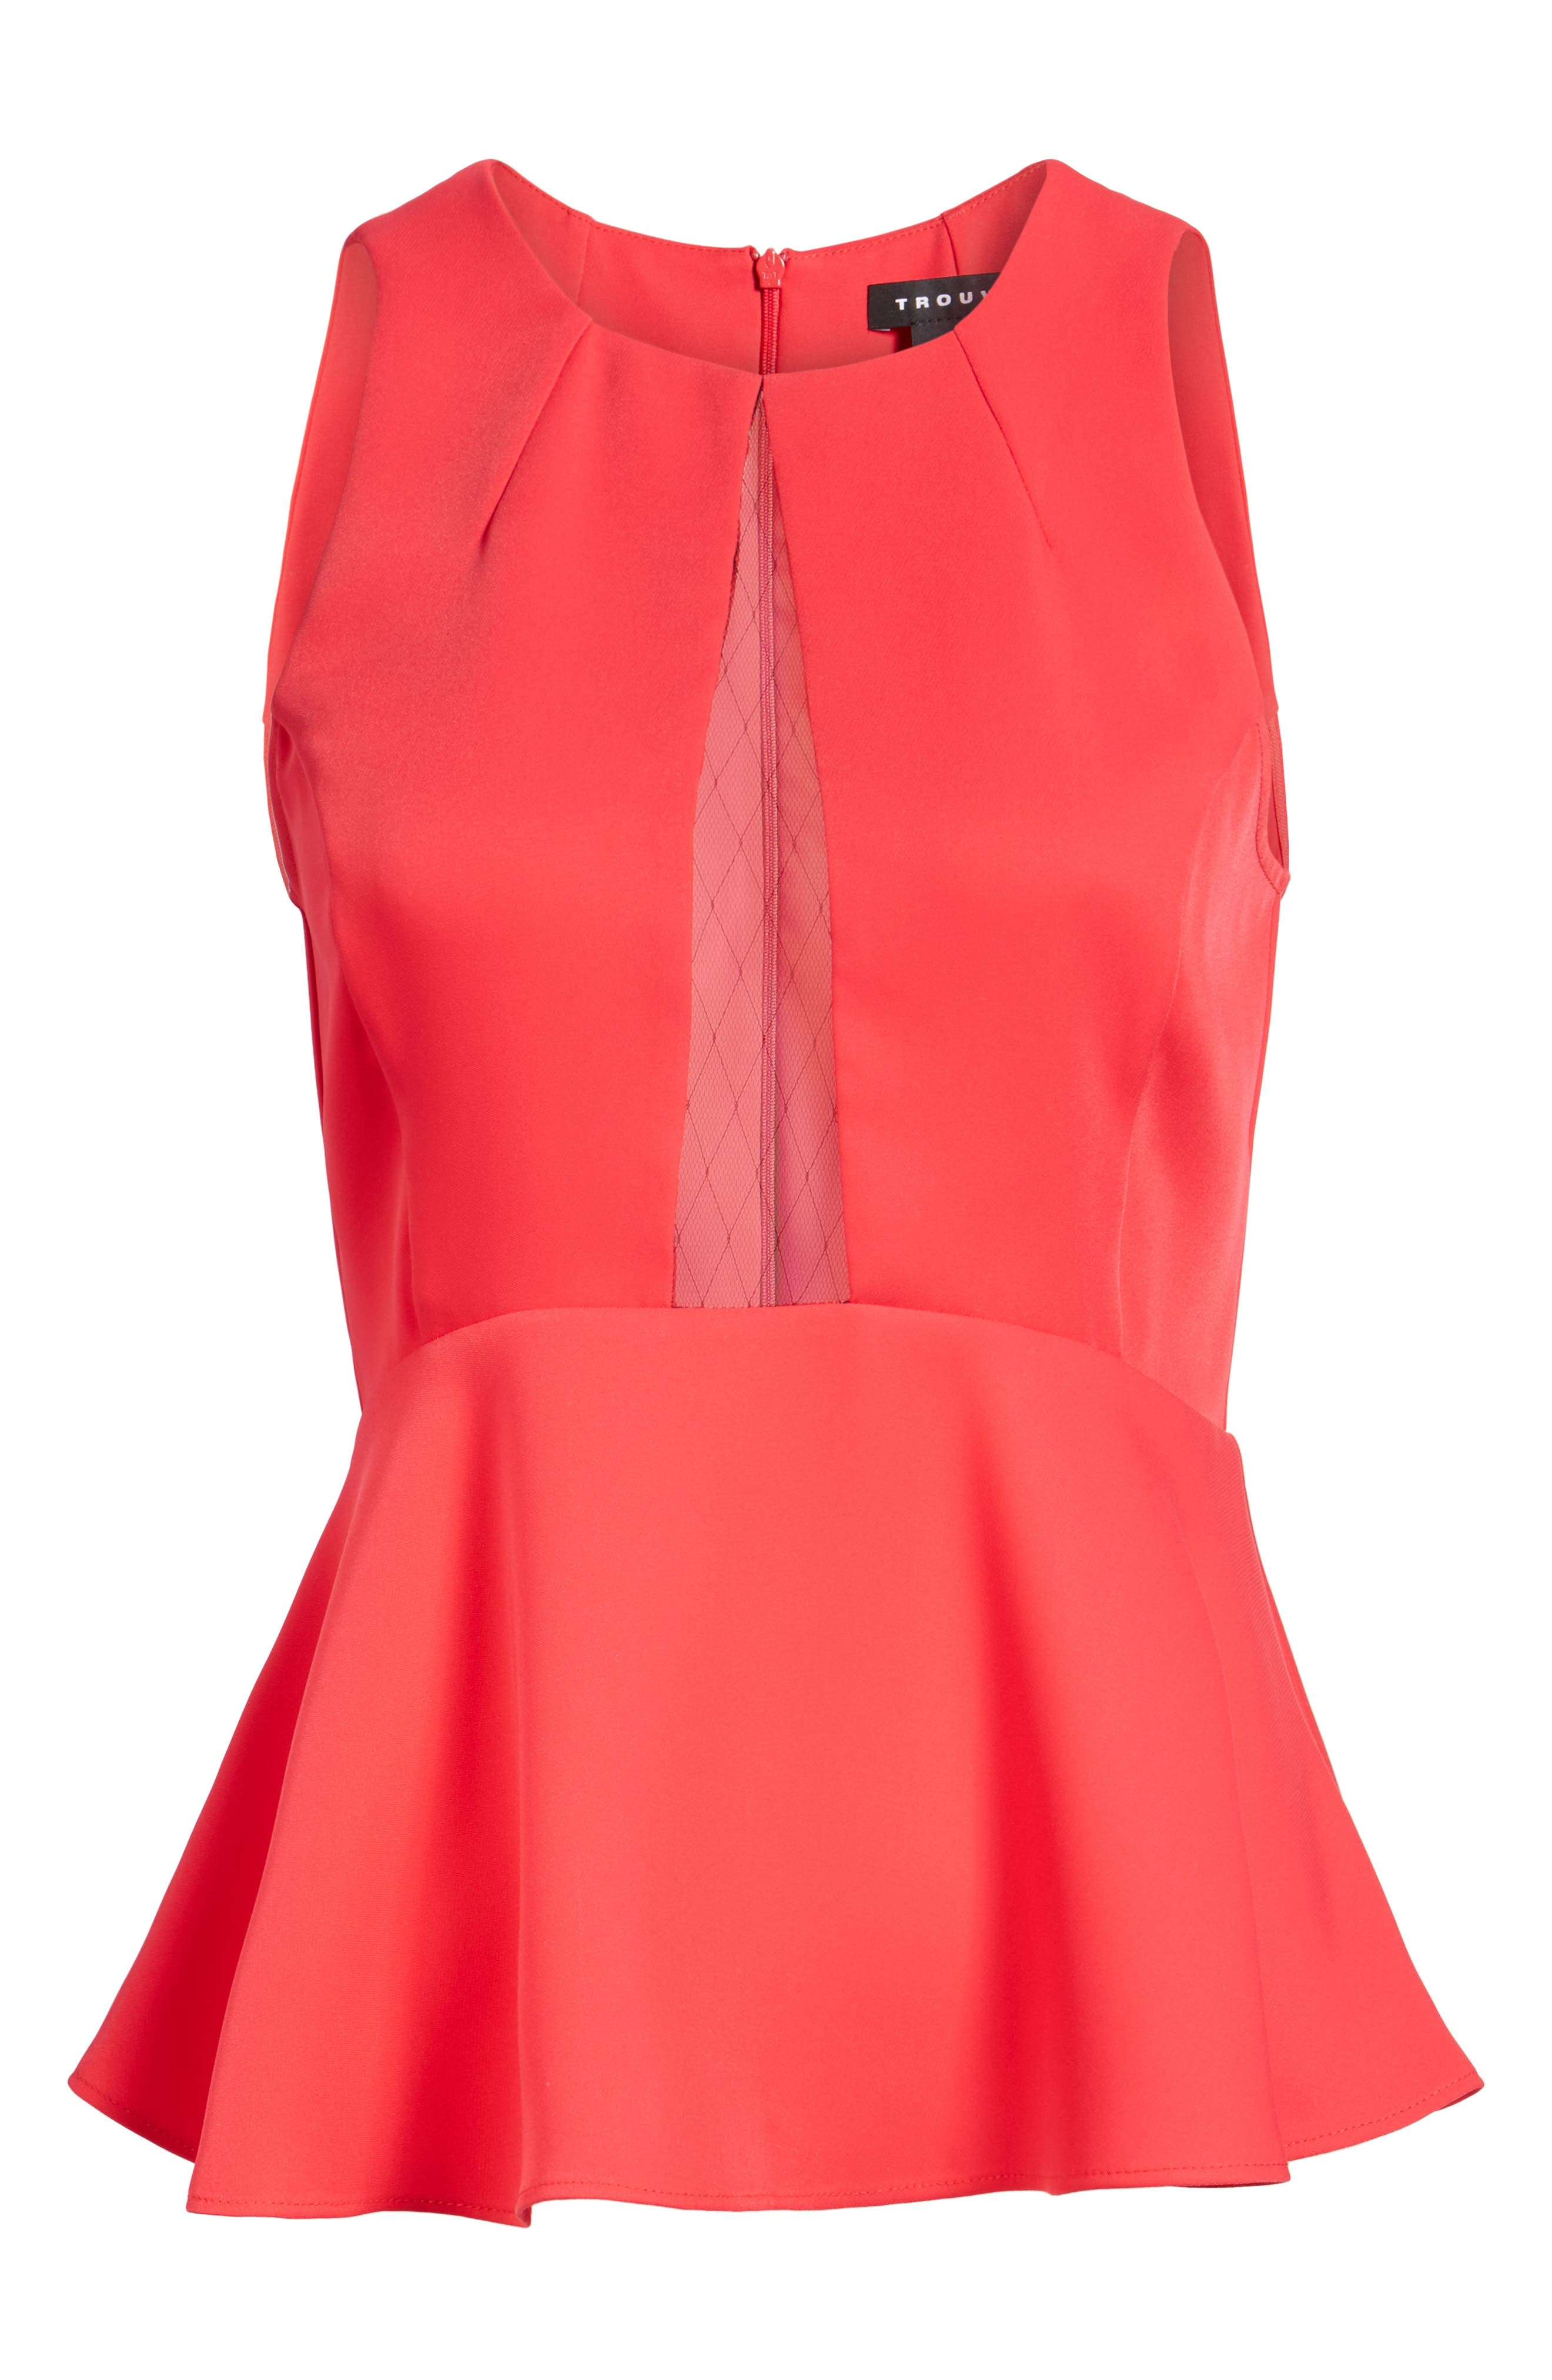 Date Peplum Top,                             Alternate thumbnail 6, color,                             Red Barberry